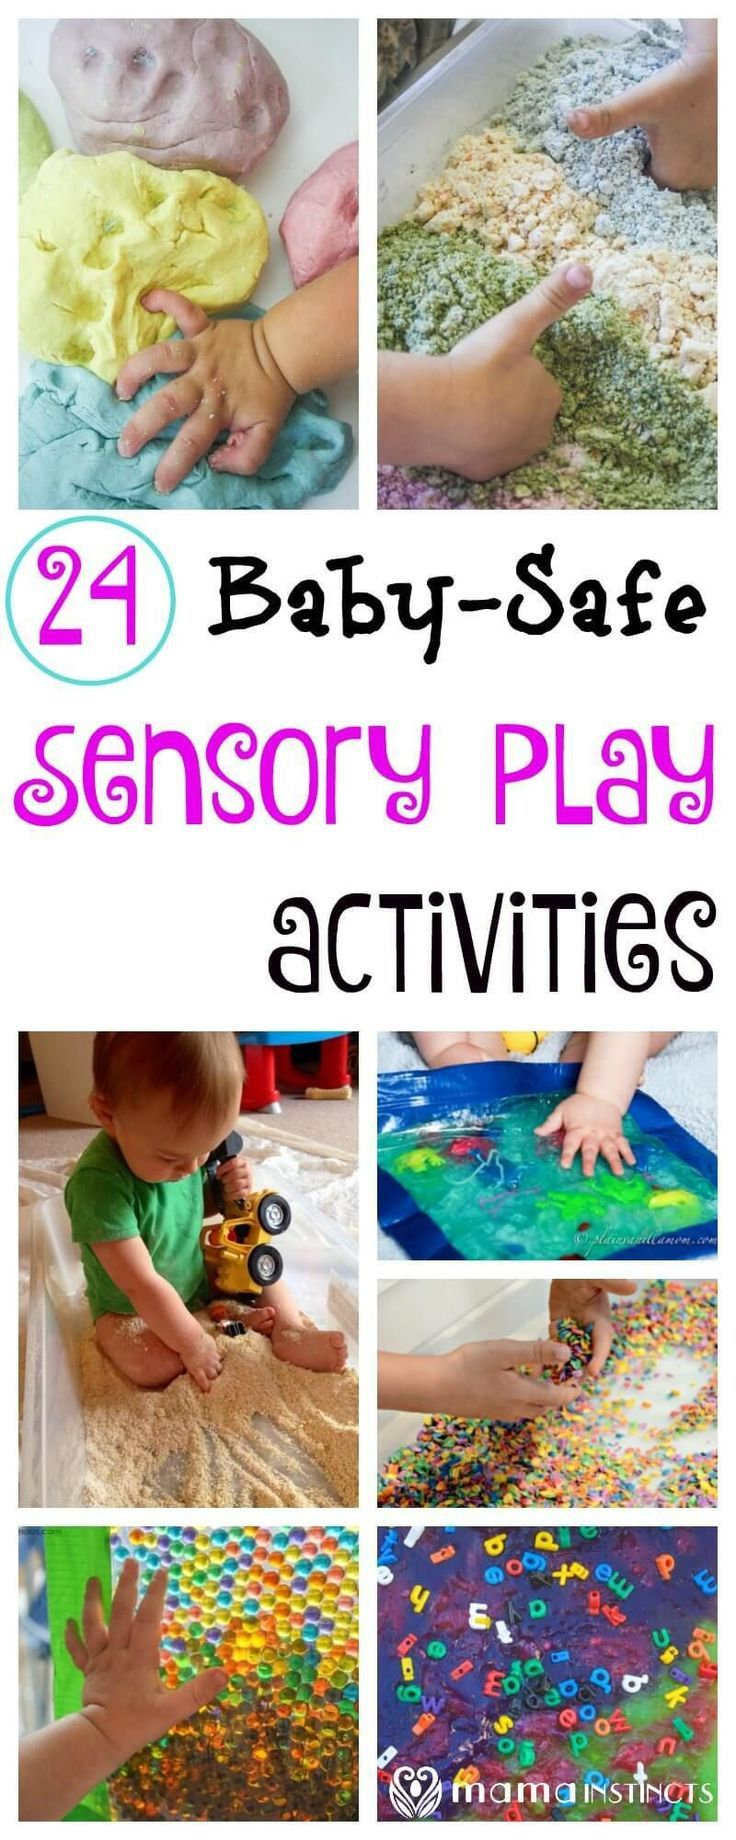 Try these fun and educational sensory play activities with your baby and toddler. They are taste-safe and don't pose a choking hazard, and fun enough for the older kids to join in the fun.